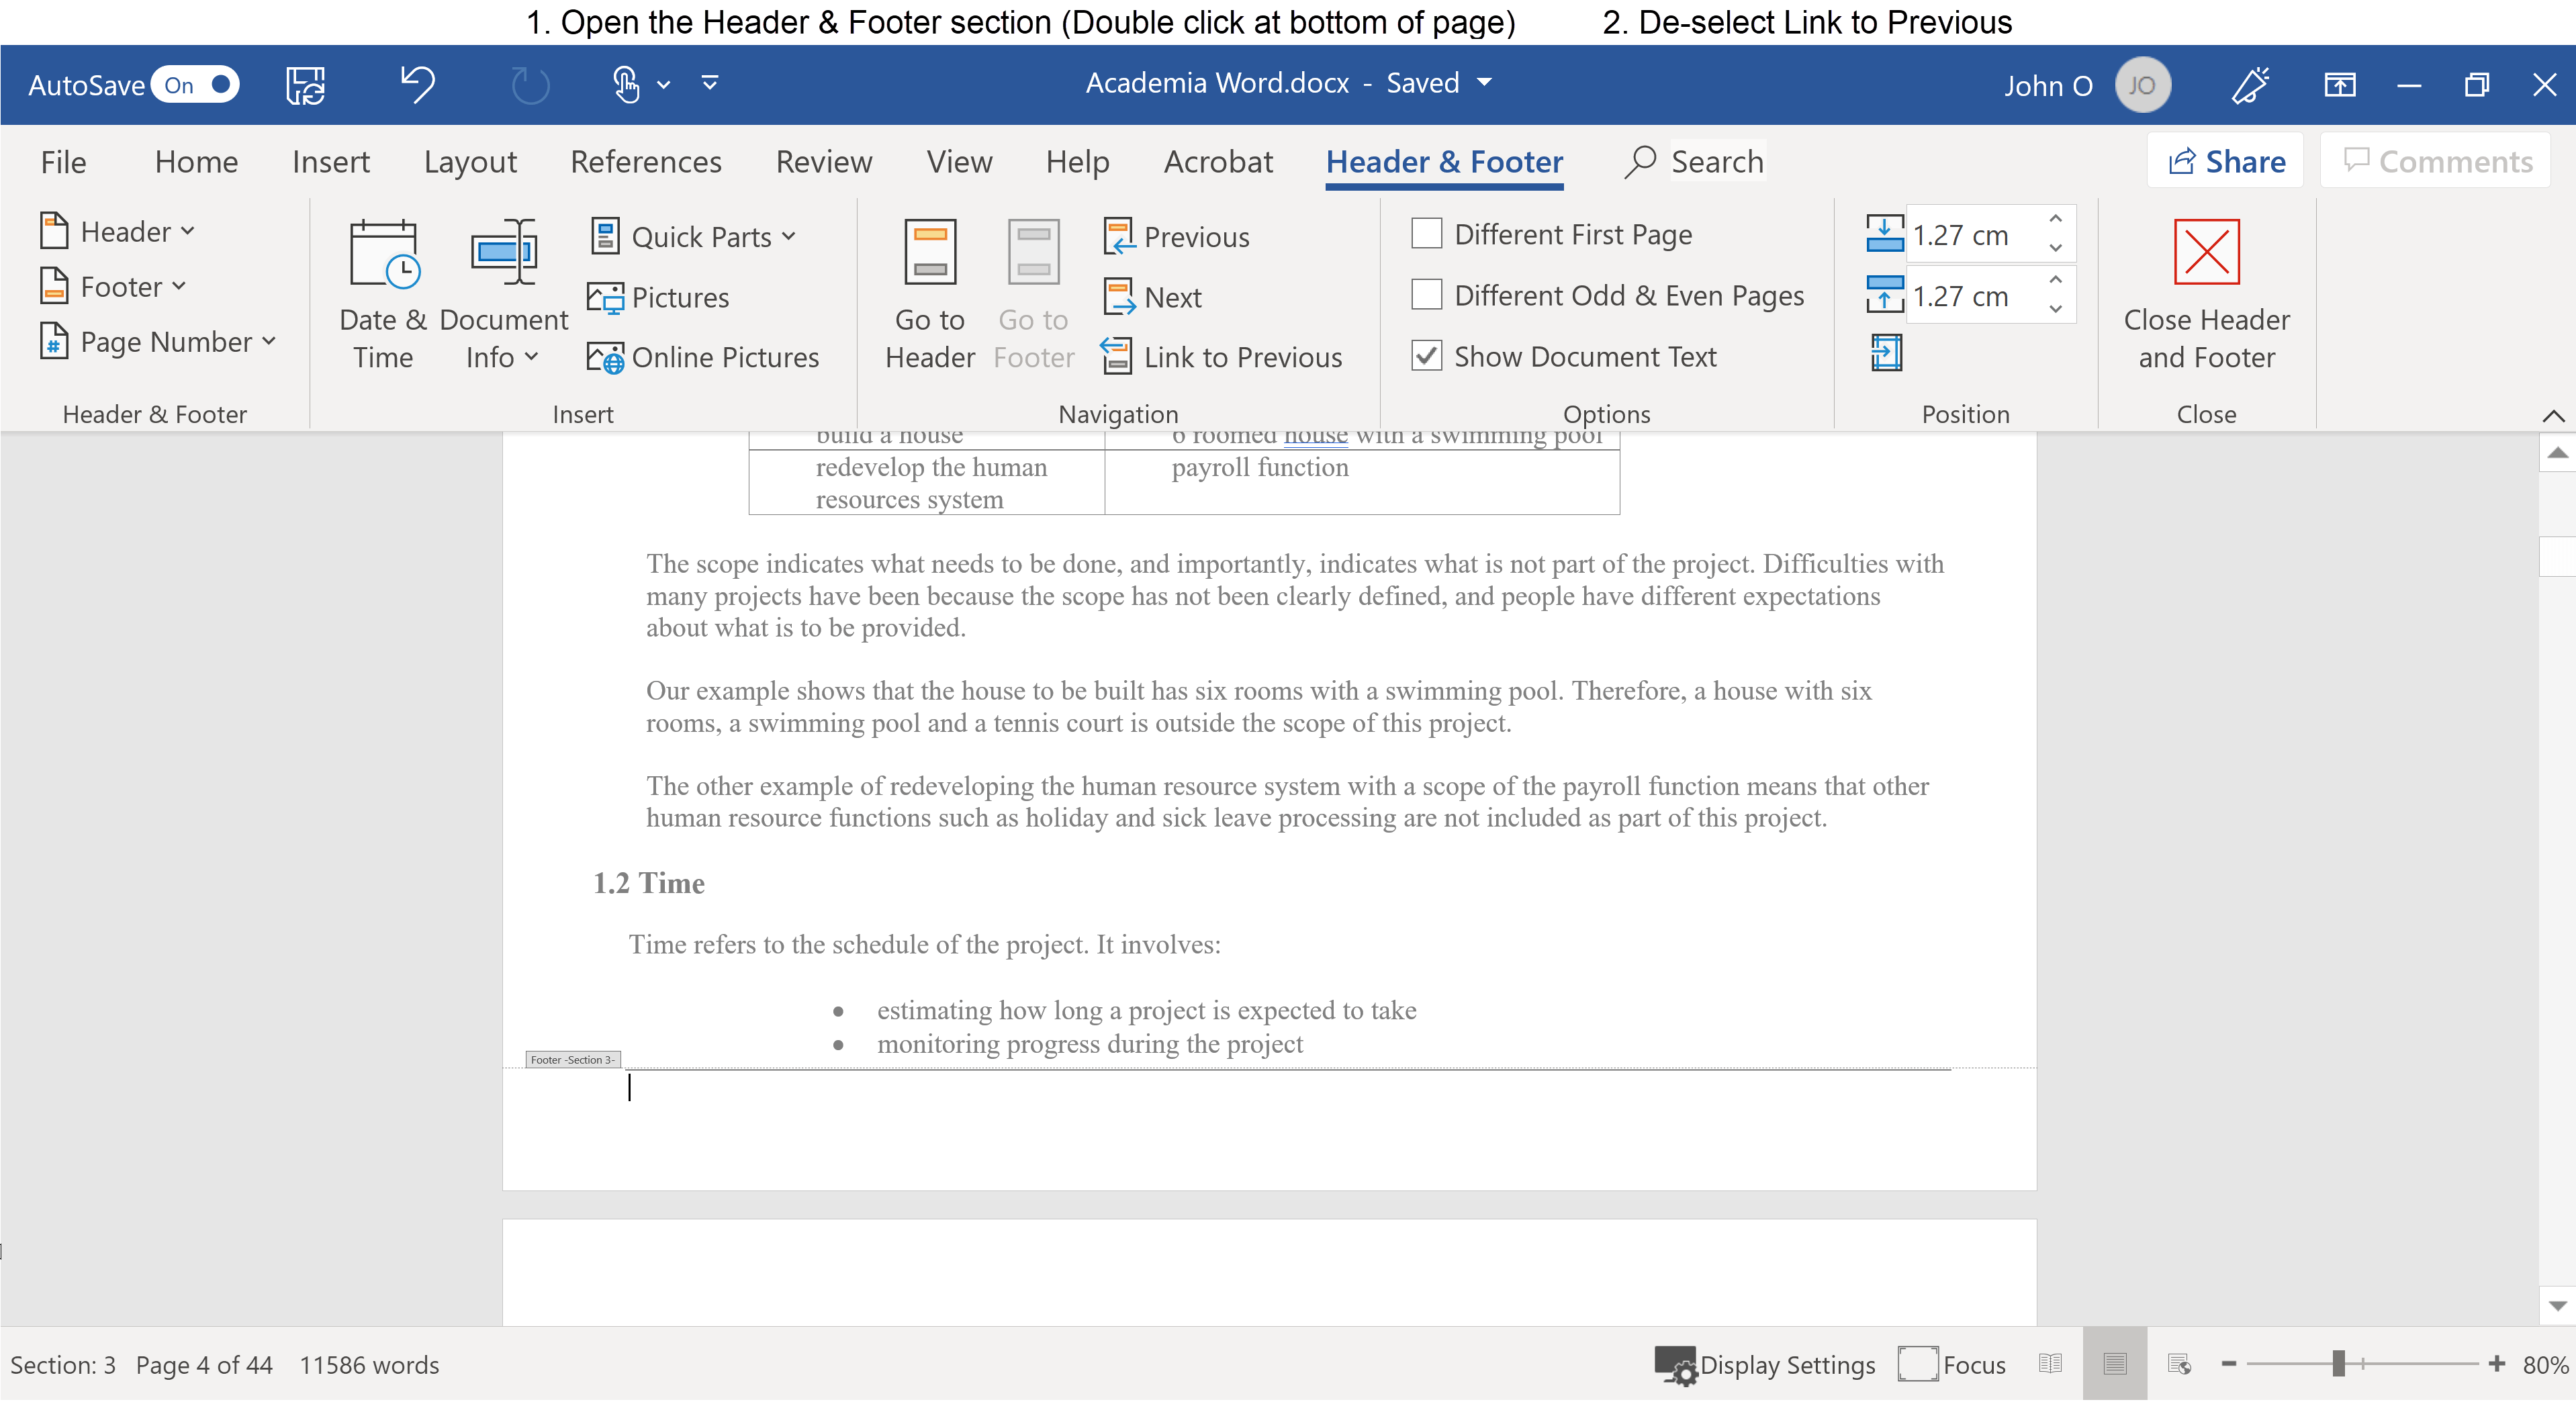 Remove linkage between Section 3 and Section 2 footer by (1) clicking (or double tapping) in blank space at bottom of the page in Section 3 (2) De-select